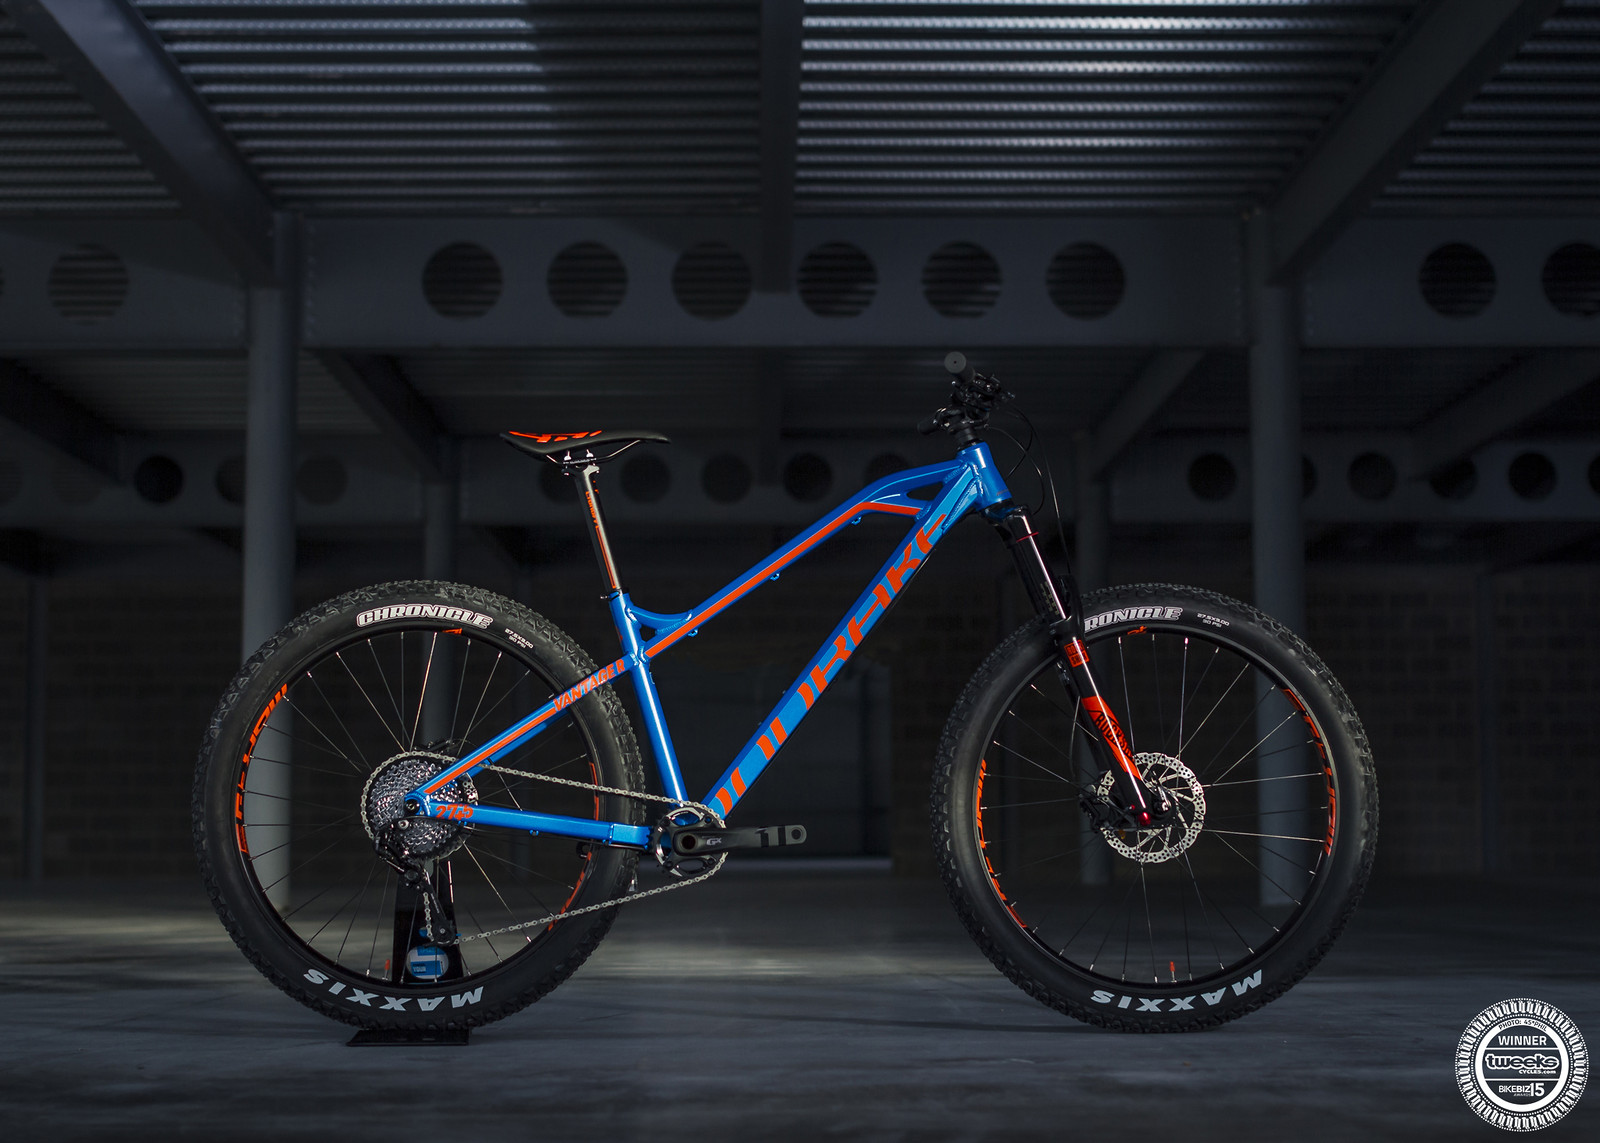 Tweeks Cycles Mondraker Vantage R Plus